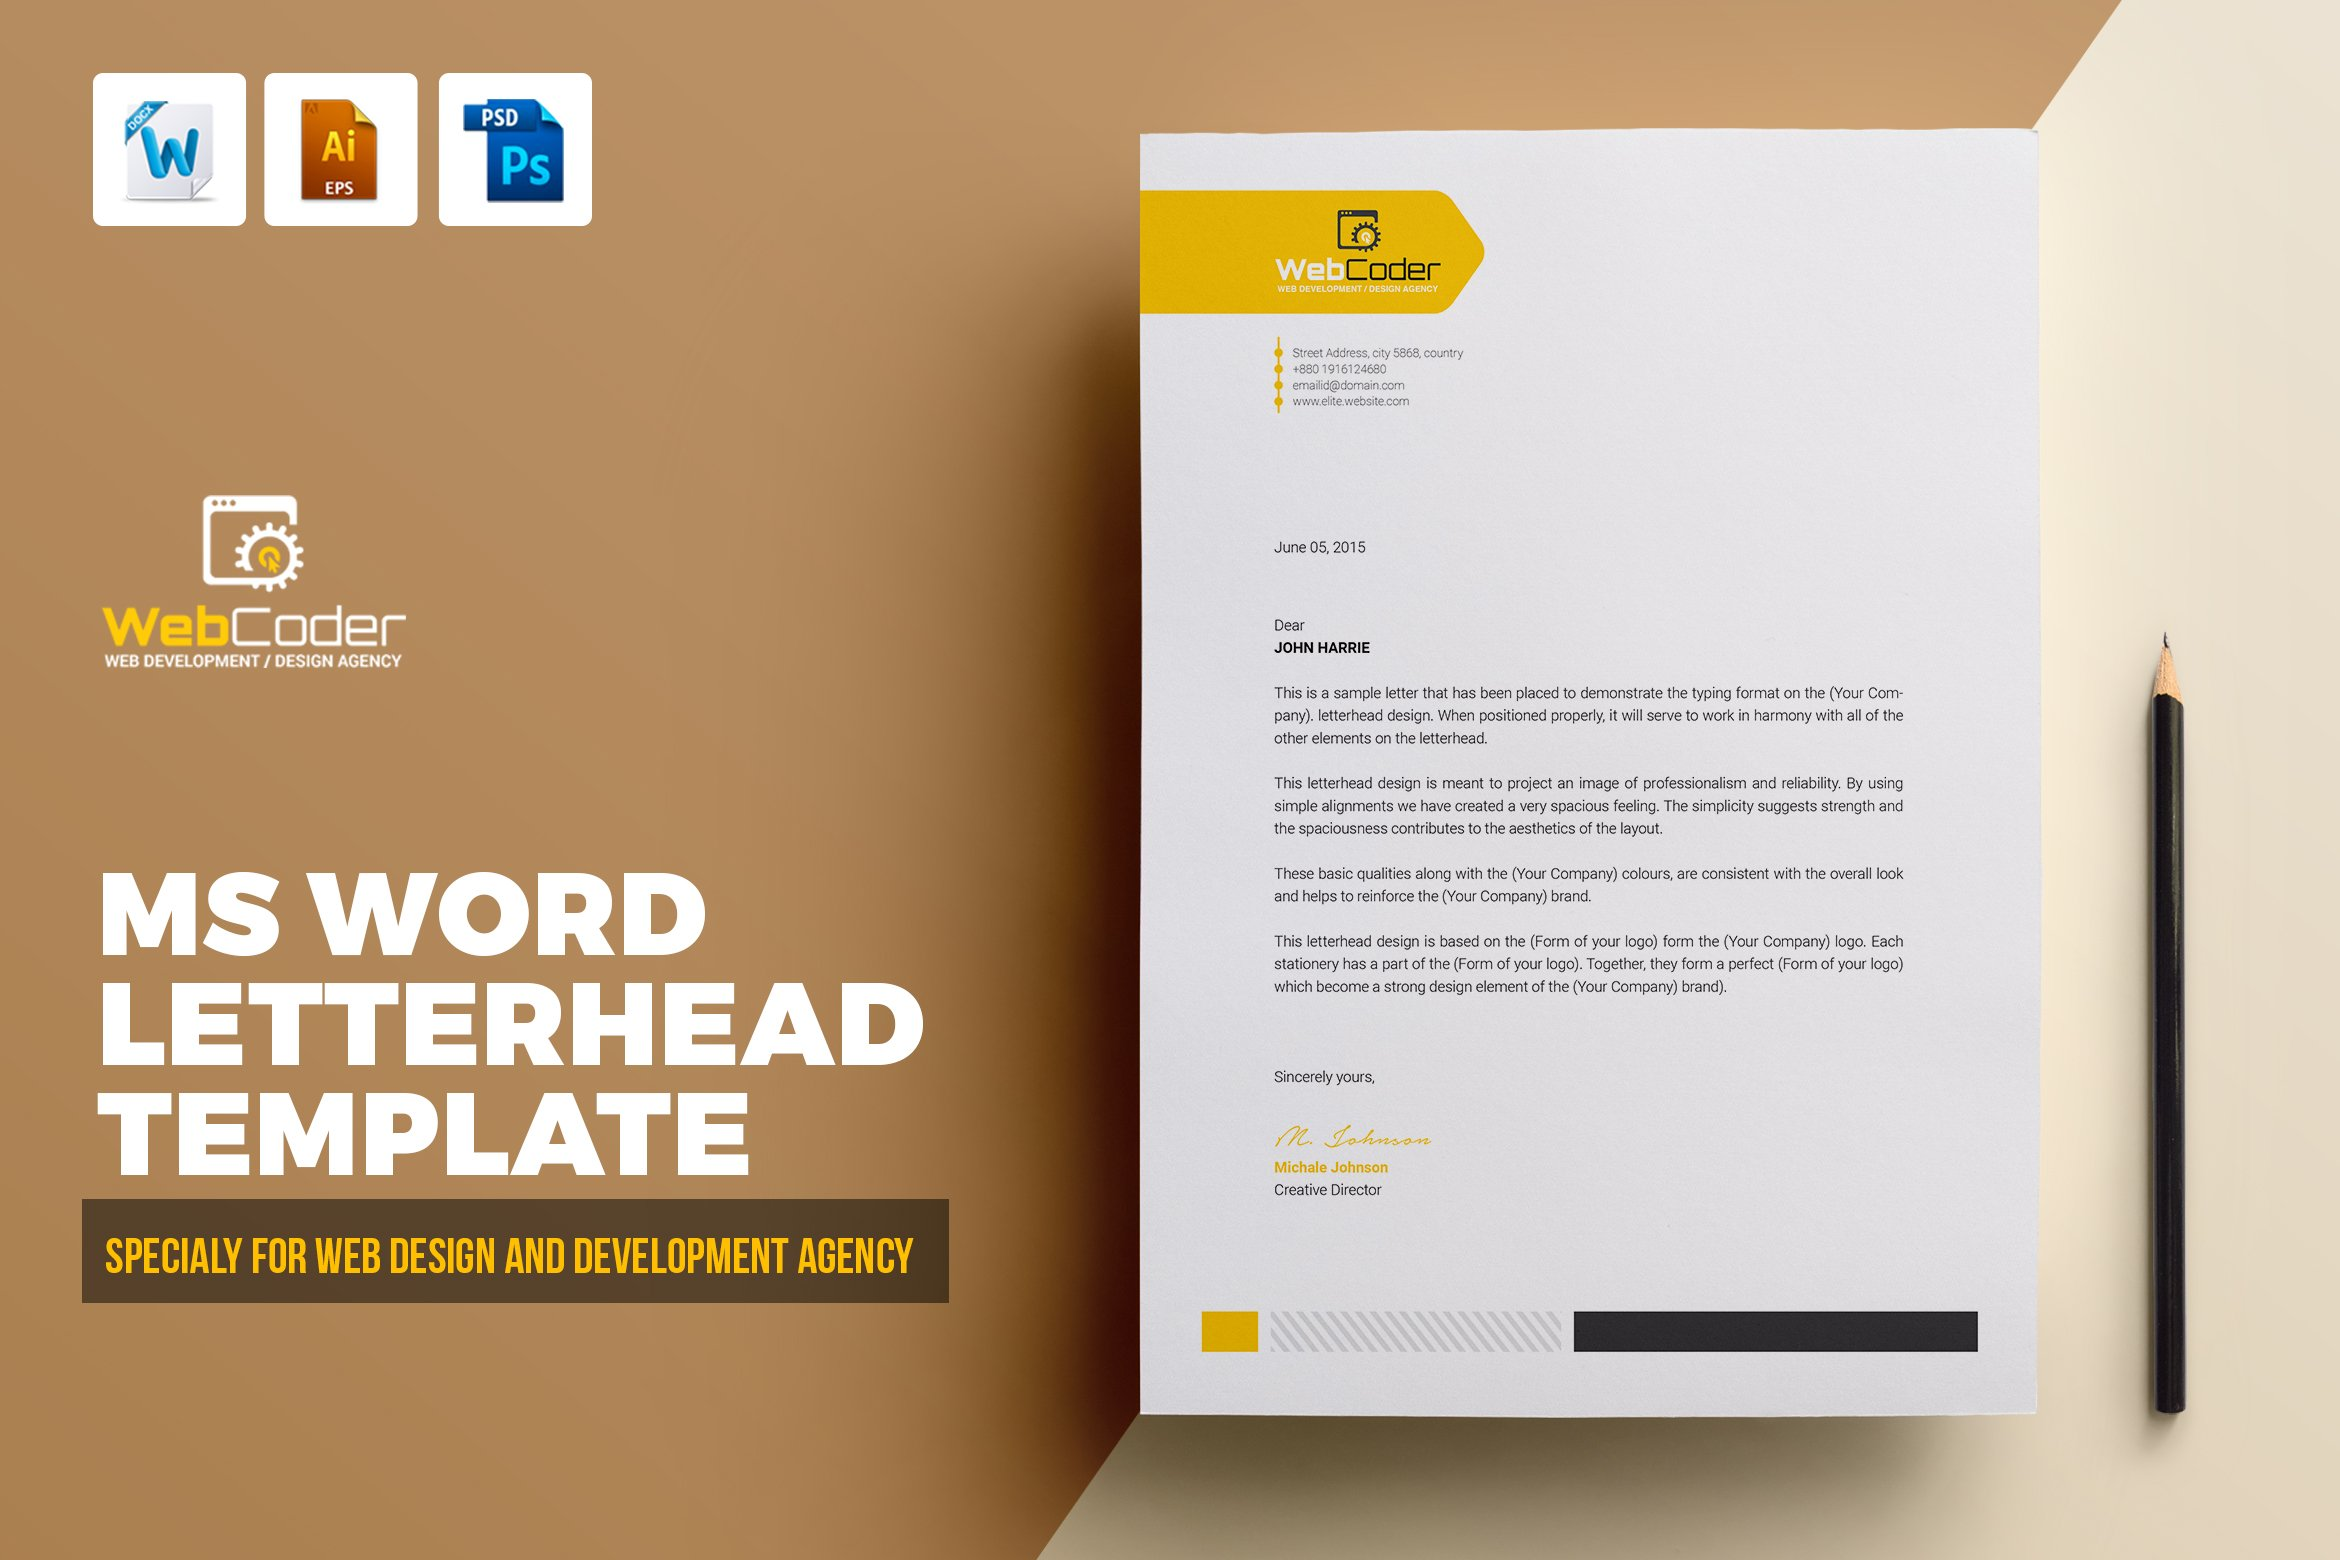 Ms word letterhead template choice image template design for Photo templates from stopdesign image info